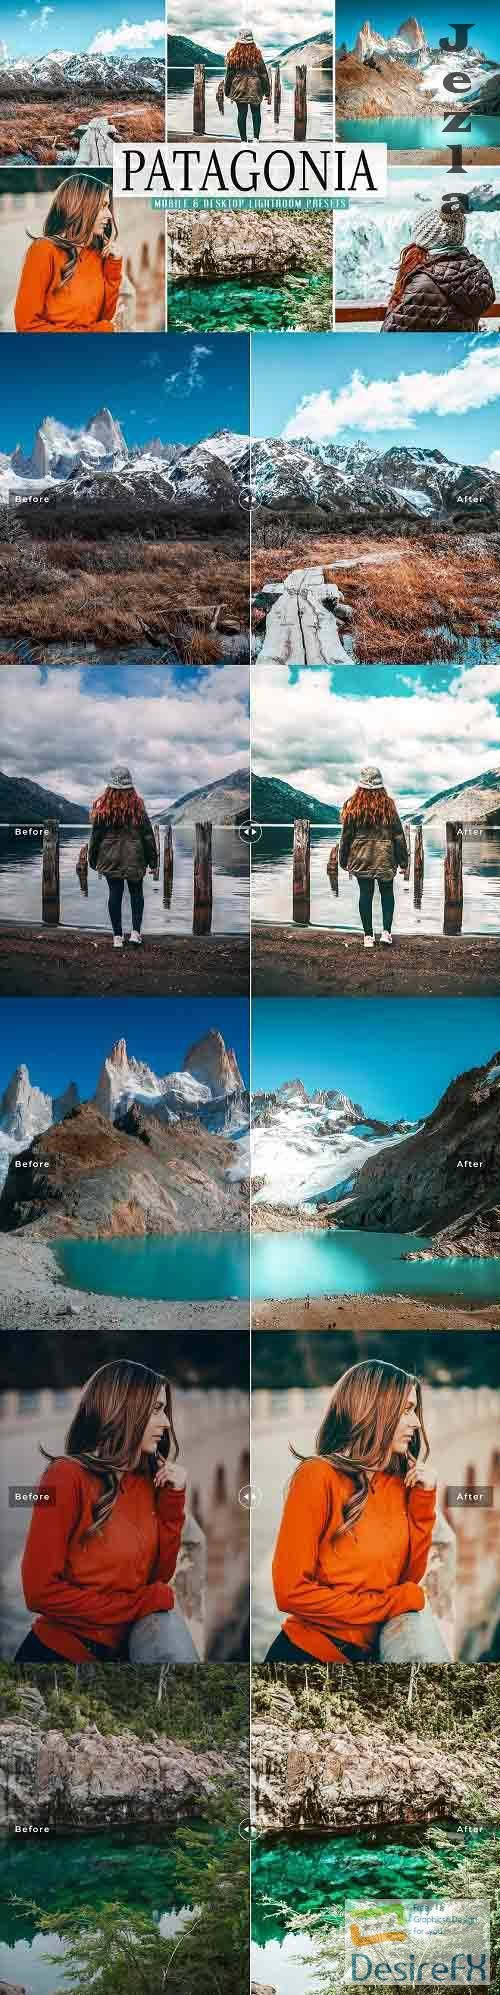 Patagonia Pro Lightroom Presets - 5669983 - Mobile & Desktop